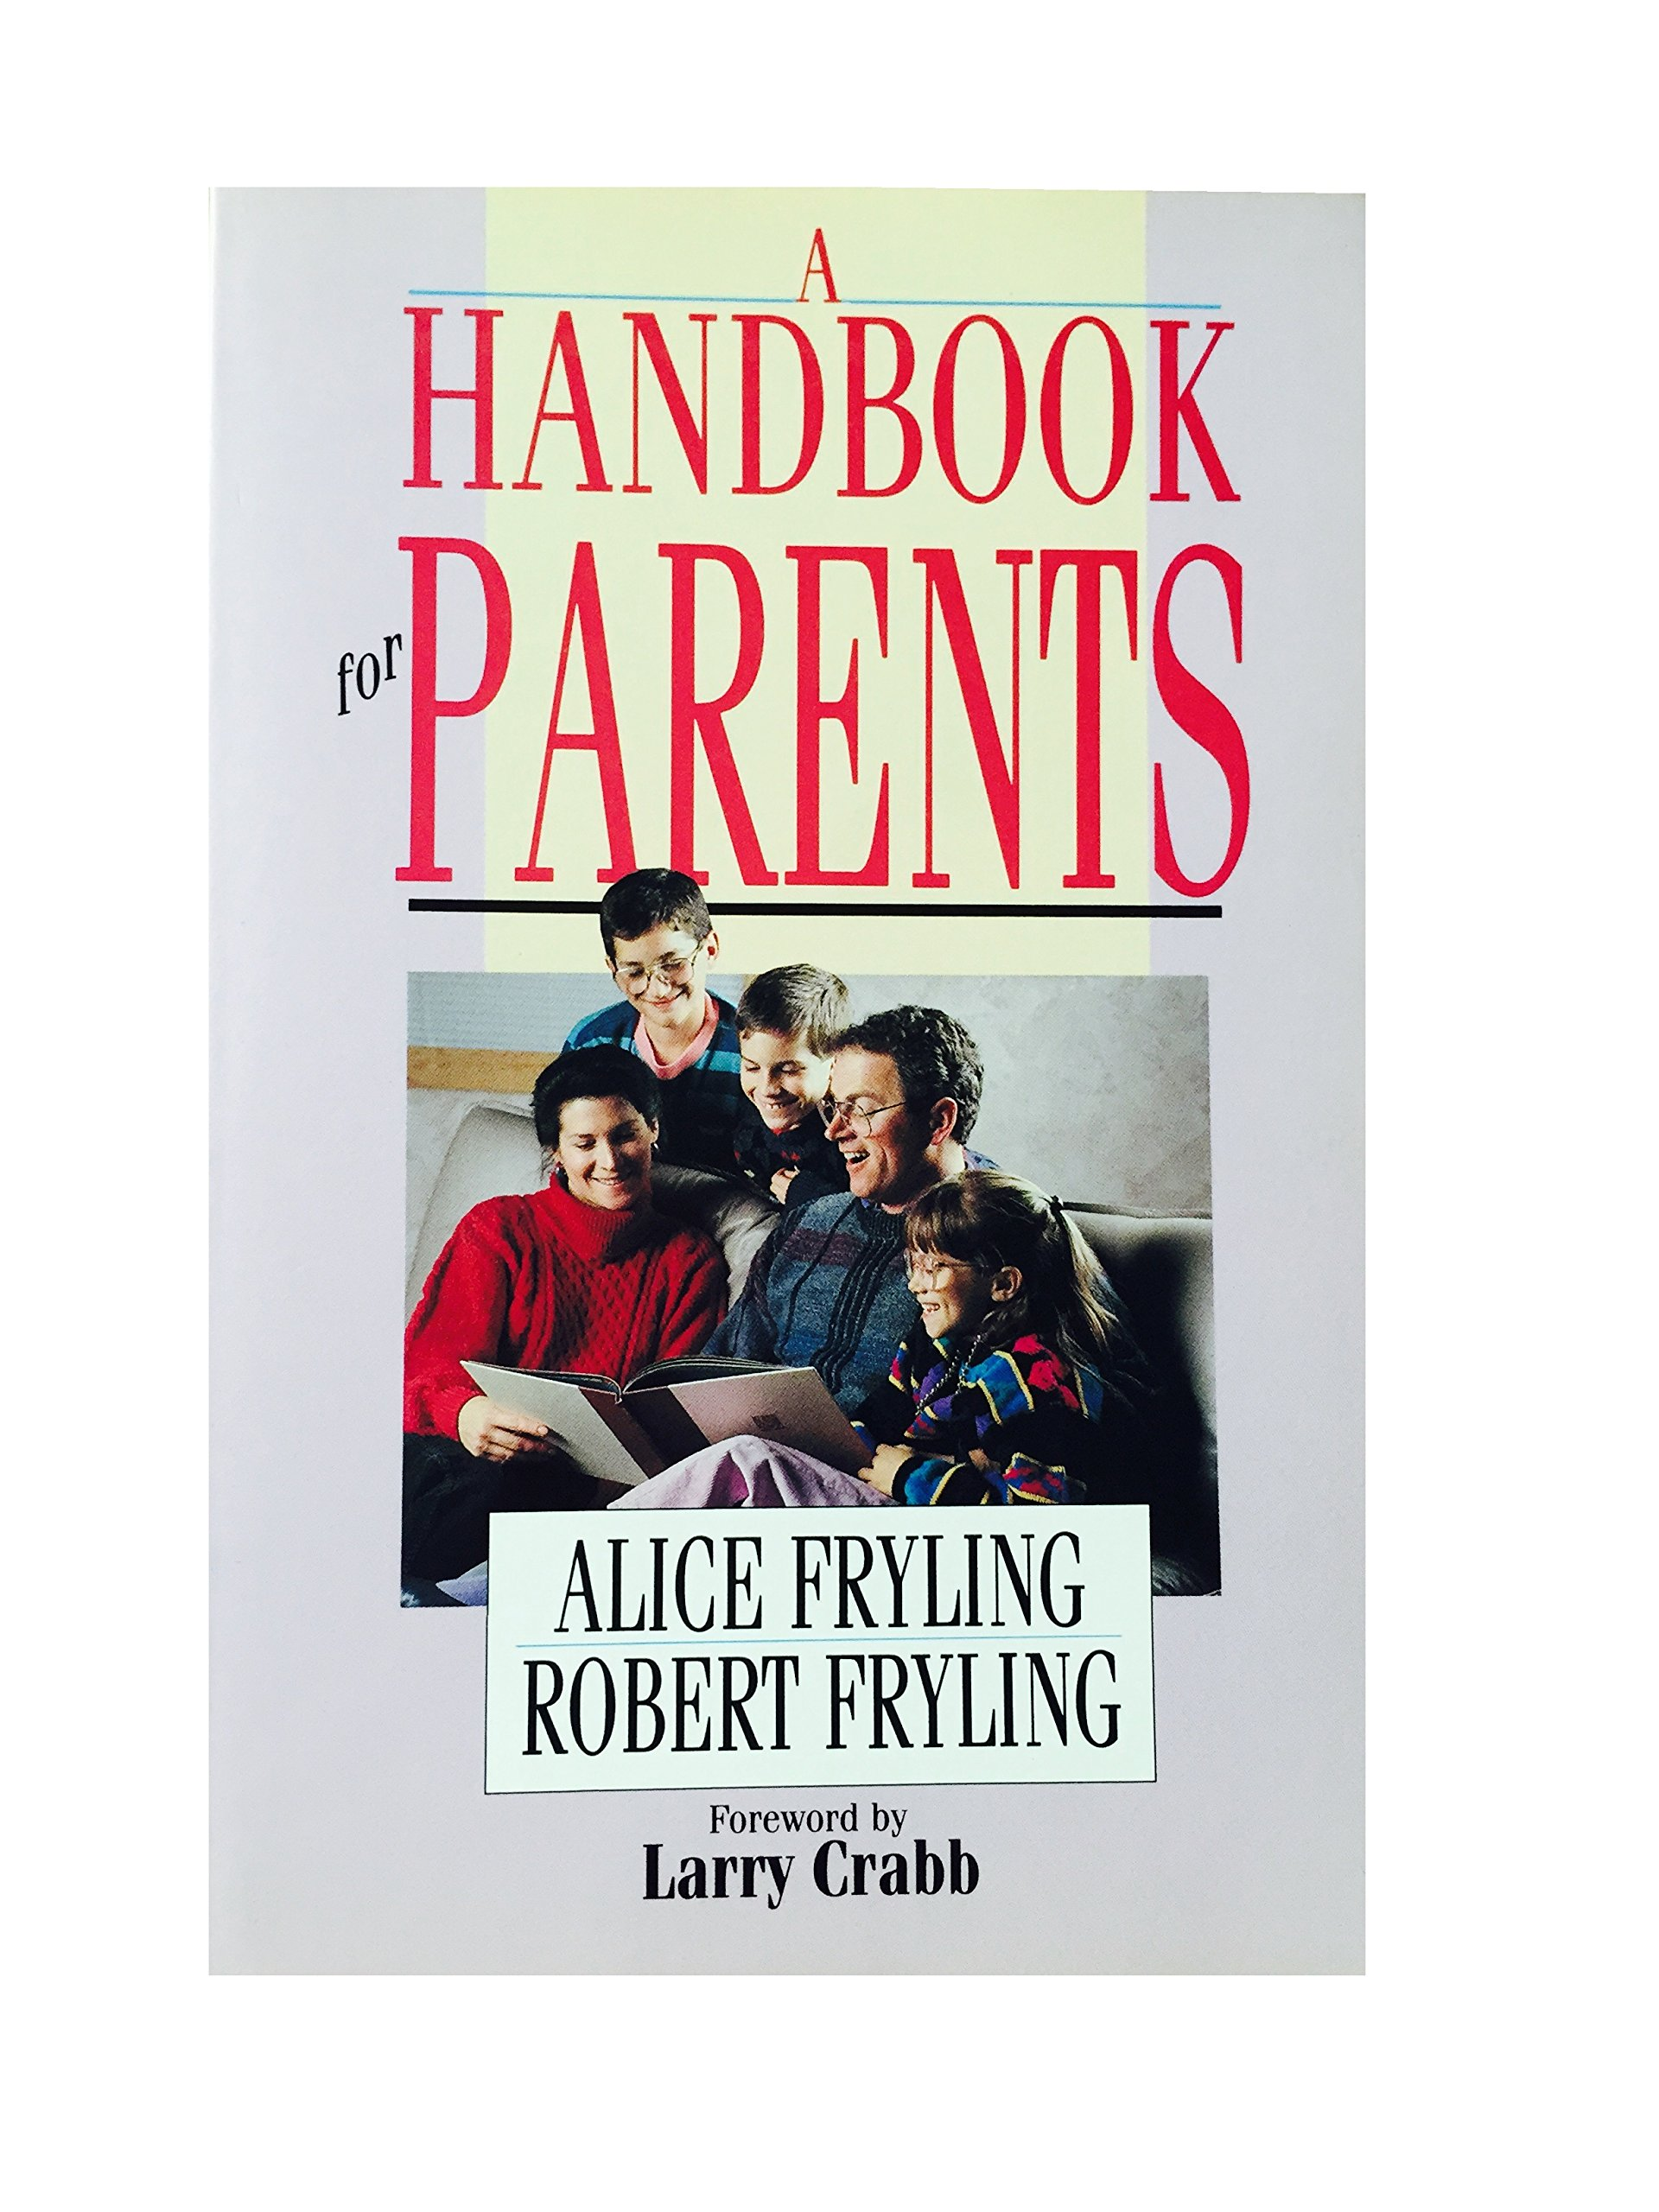 A Handbook for Parents